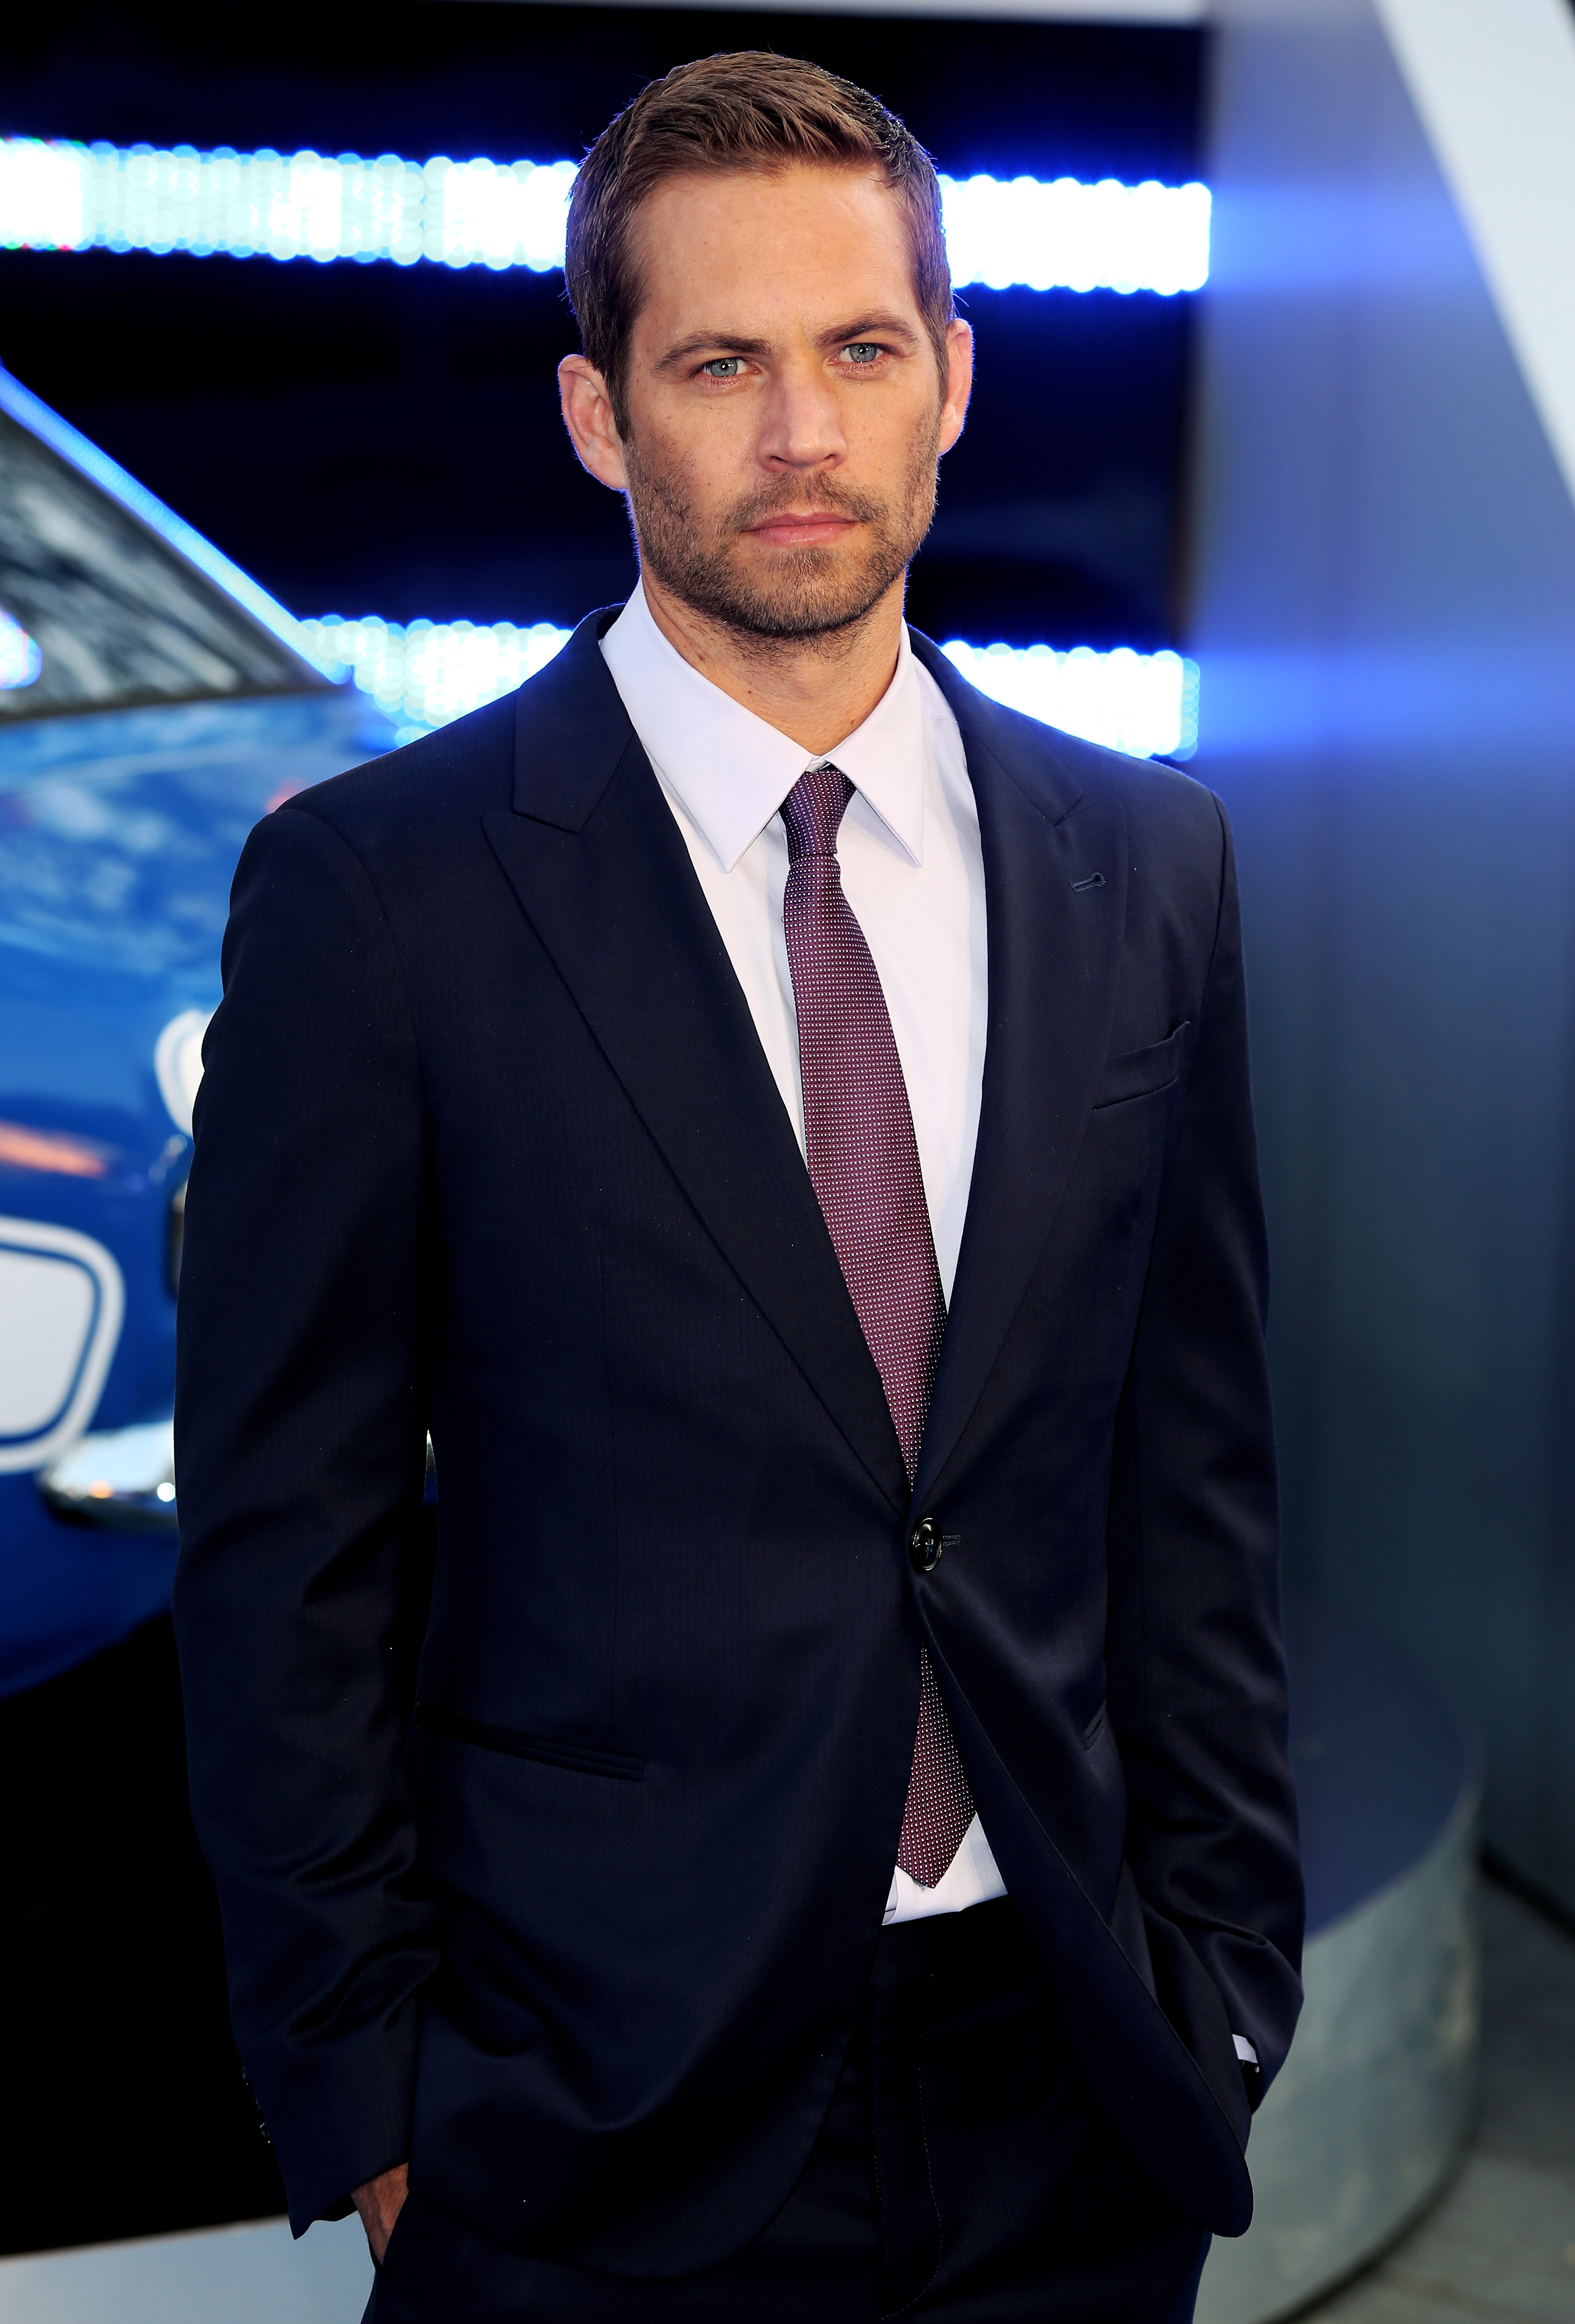 Actor Paul Walker attends the World Premiere of 'Fast & Furious 6' on May 7, 2013 in London.